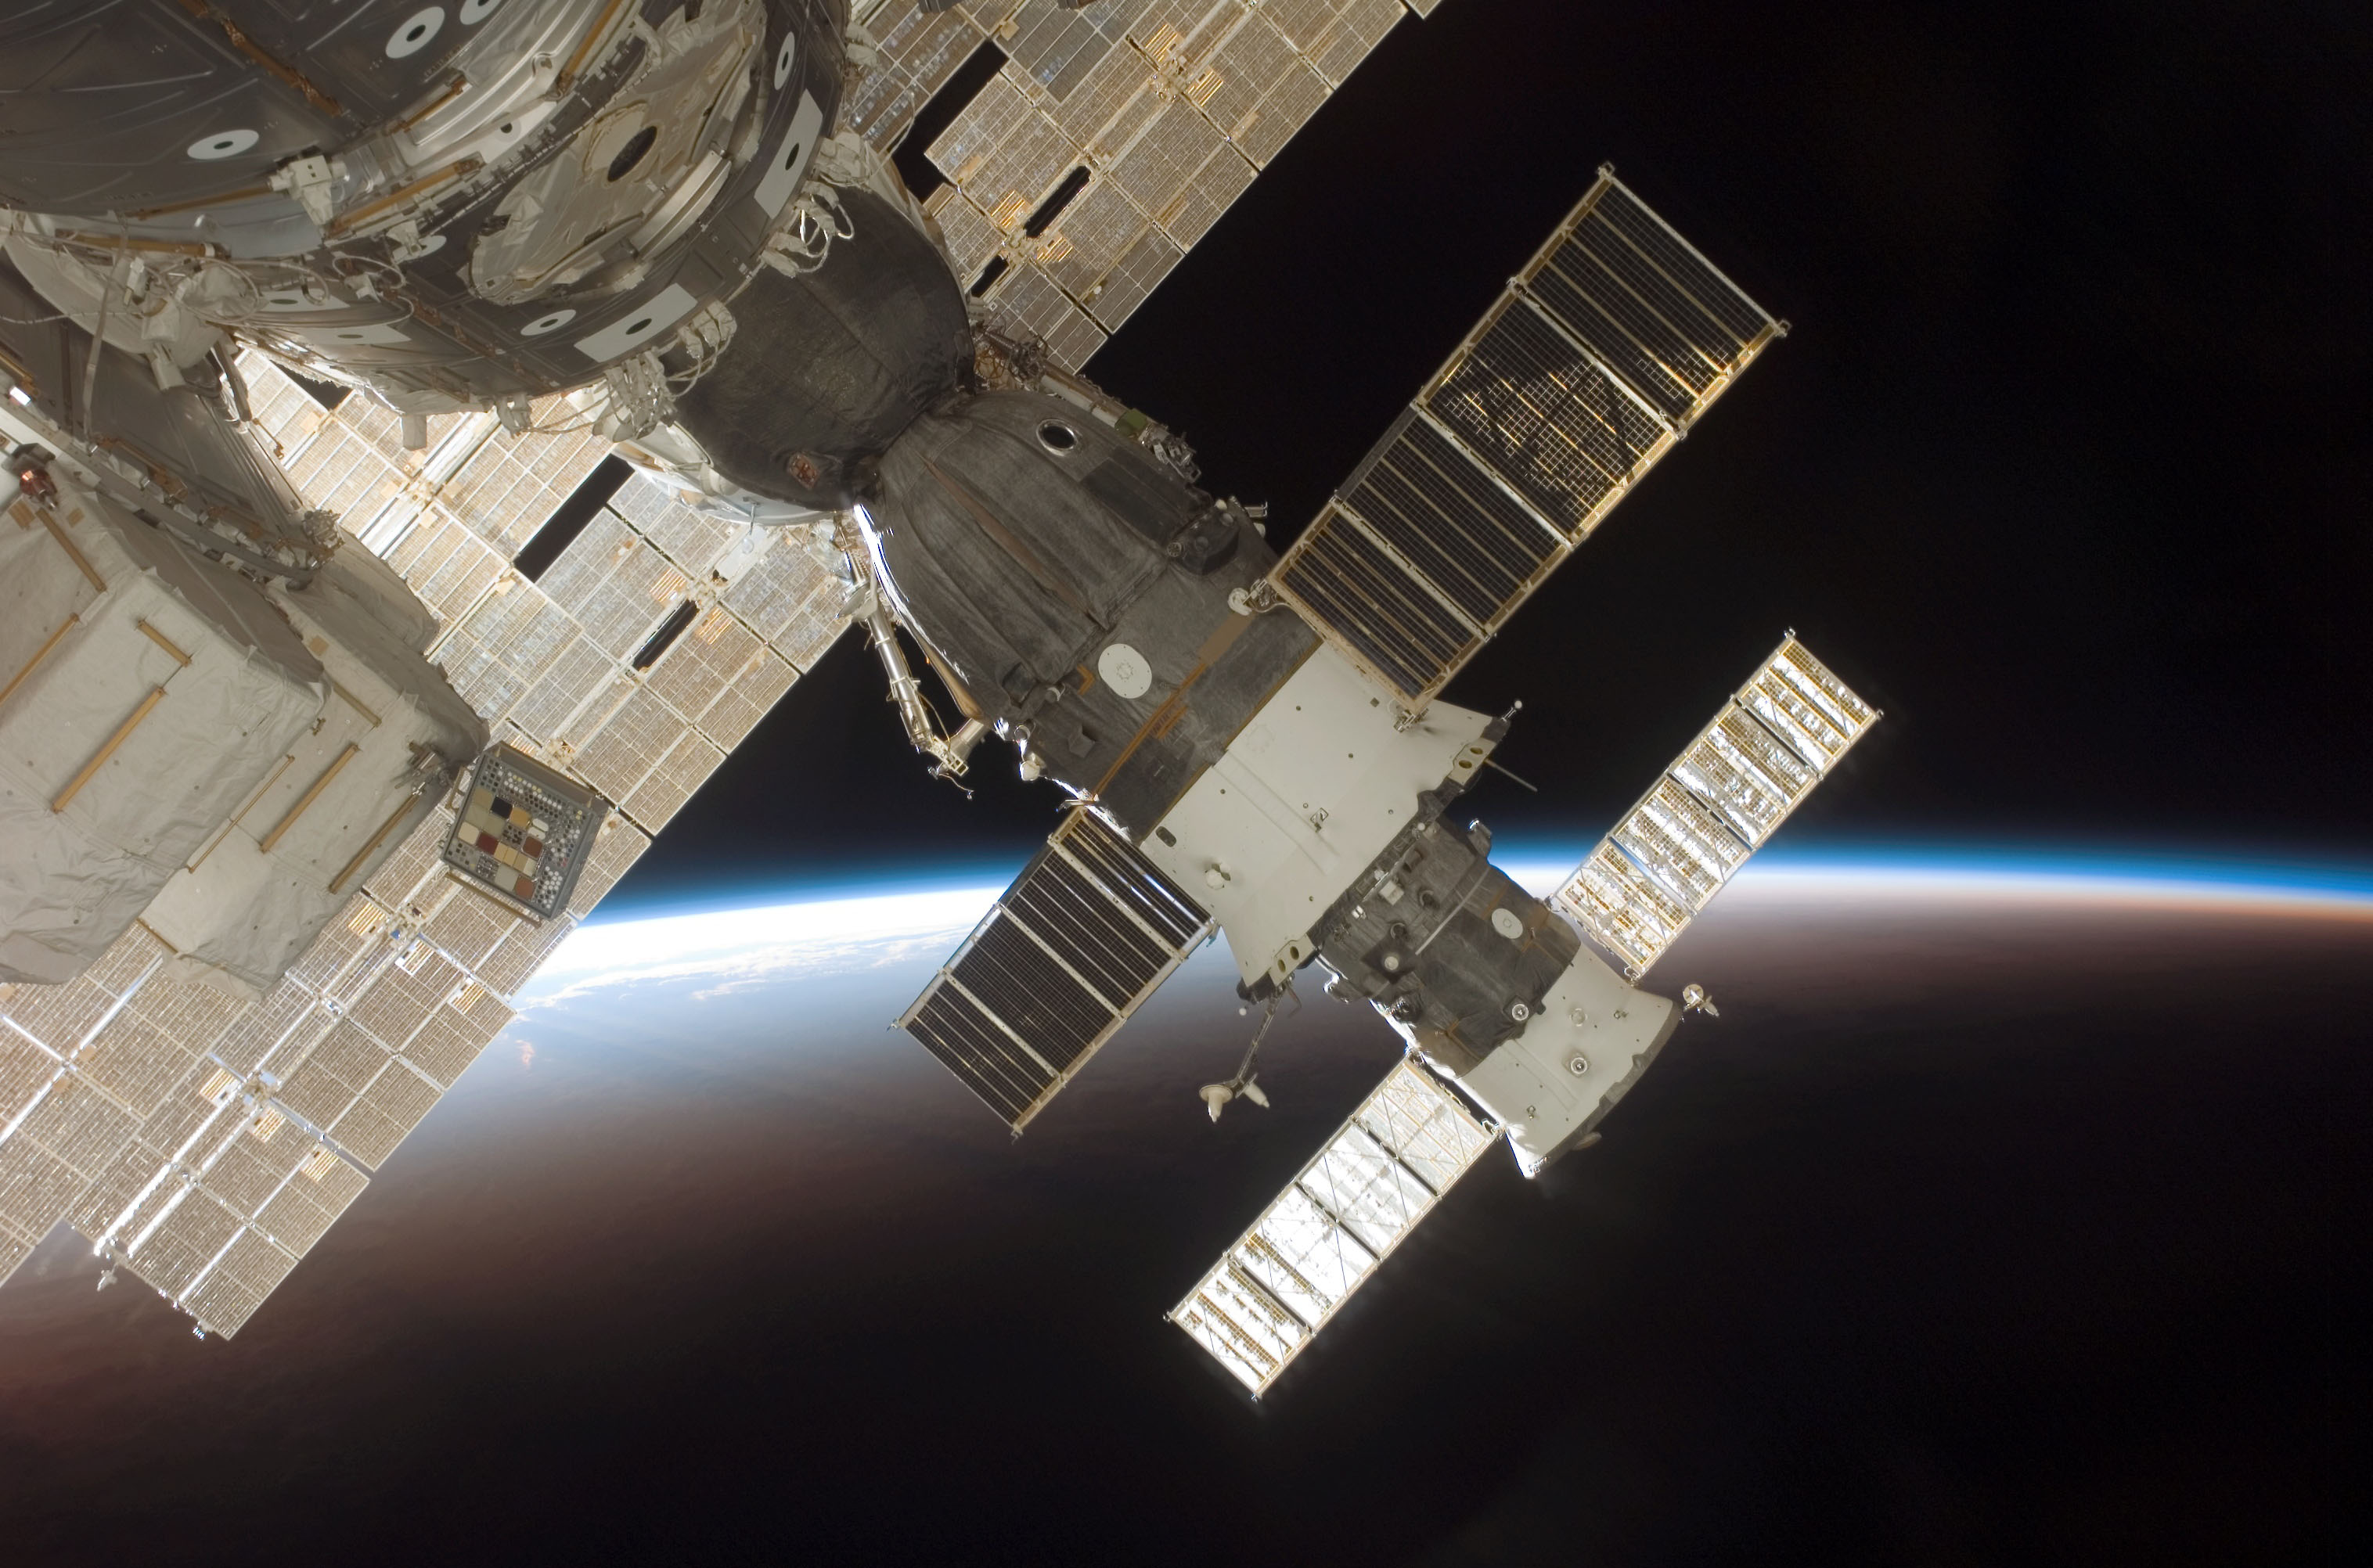 Bilddatei: International-space-station(C)NASA.jpg